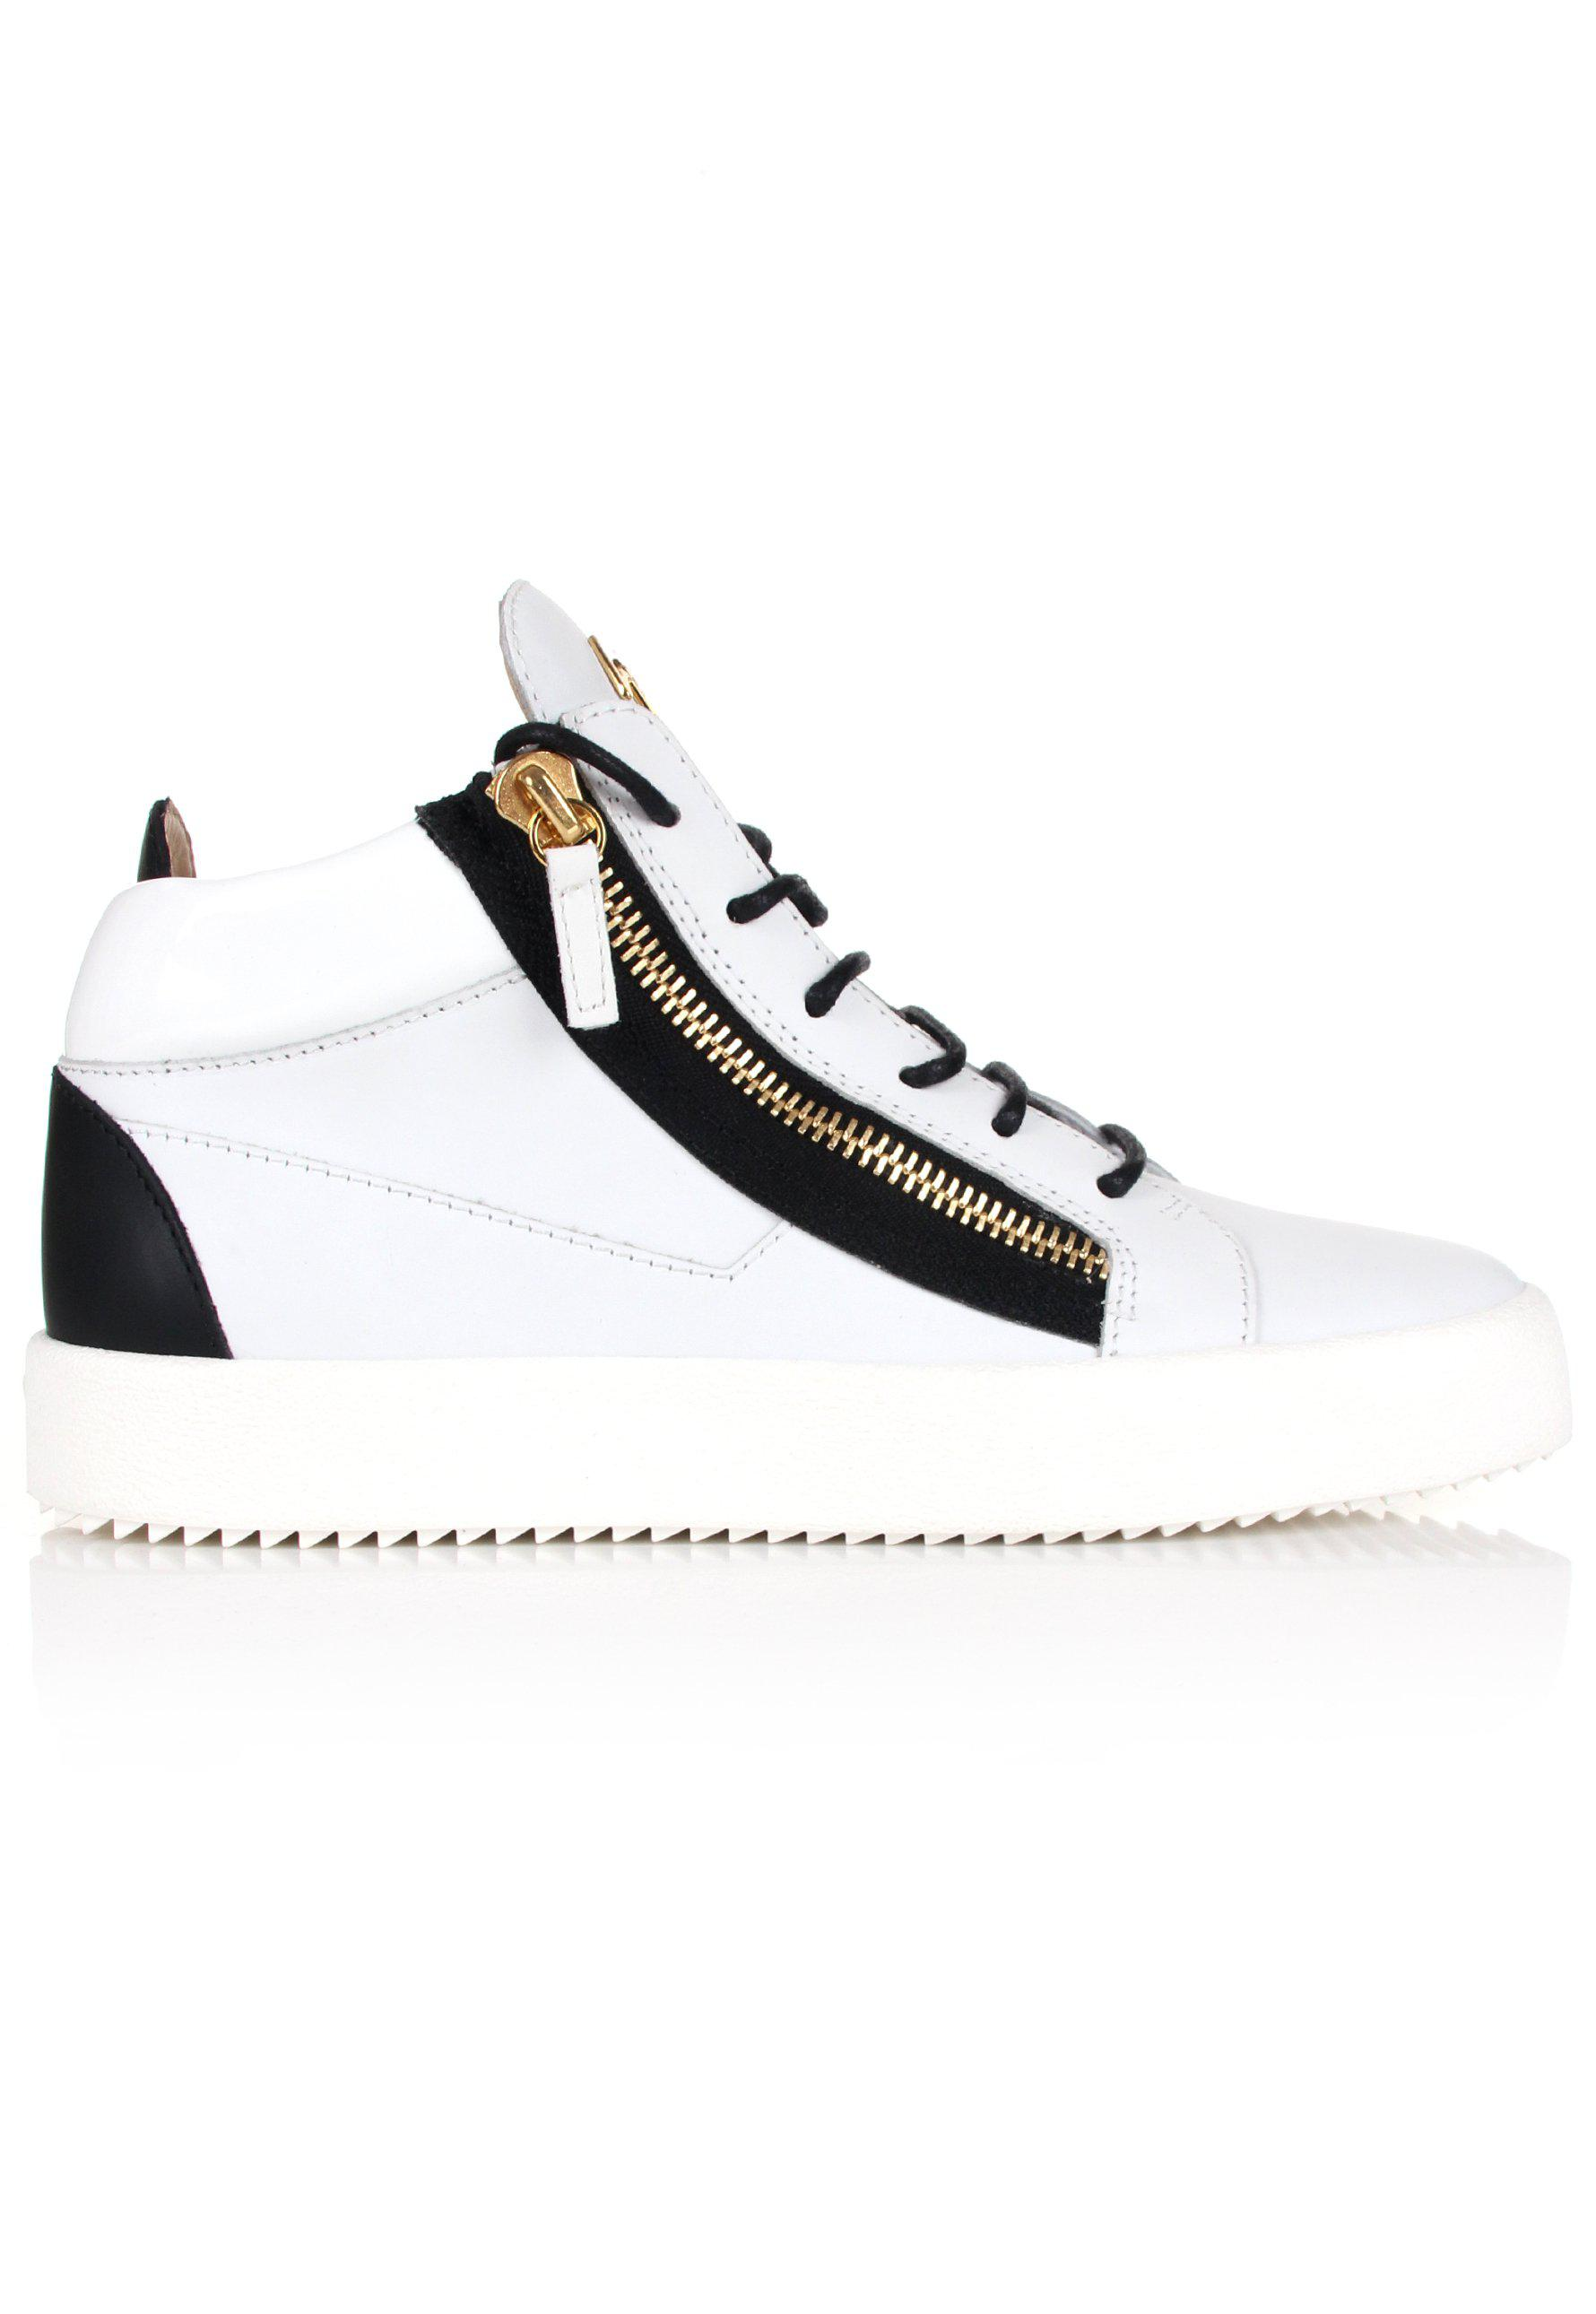 ac872d3ffa1d1 Giuseppe Zanotti Kriss Mid-top Sneakers White/black in White for Men ...